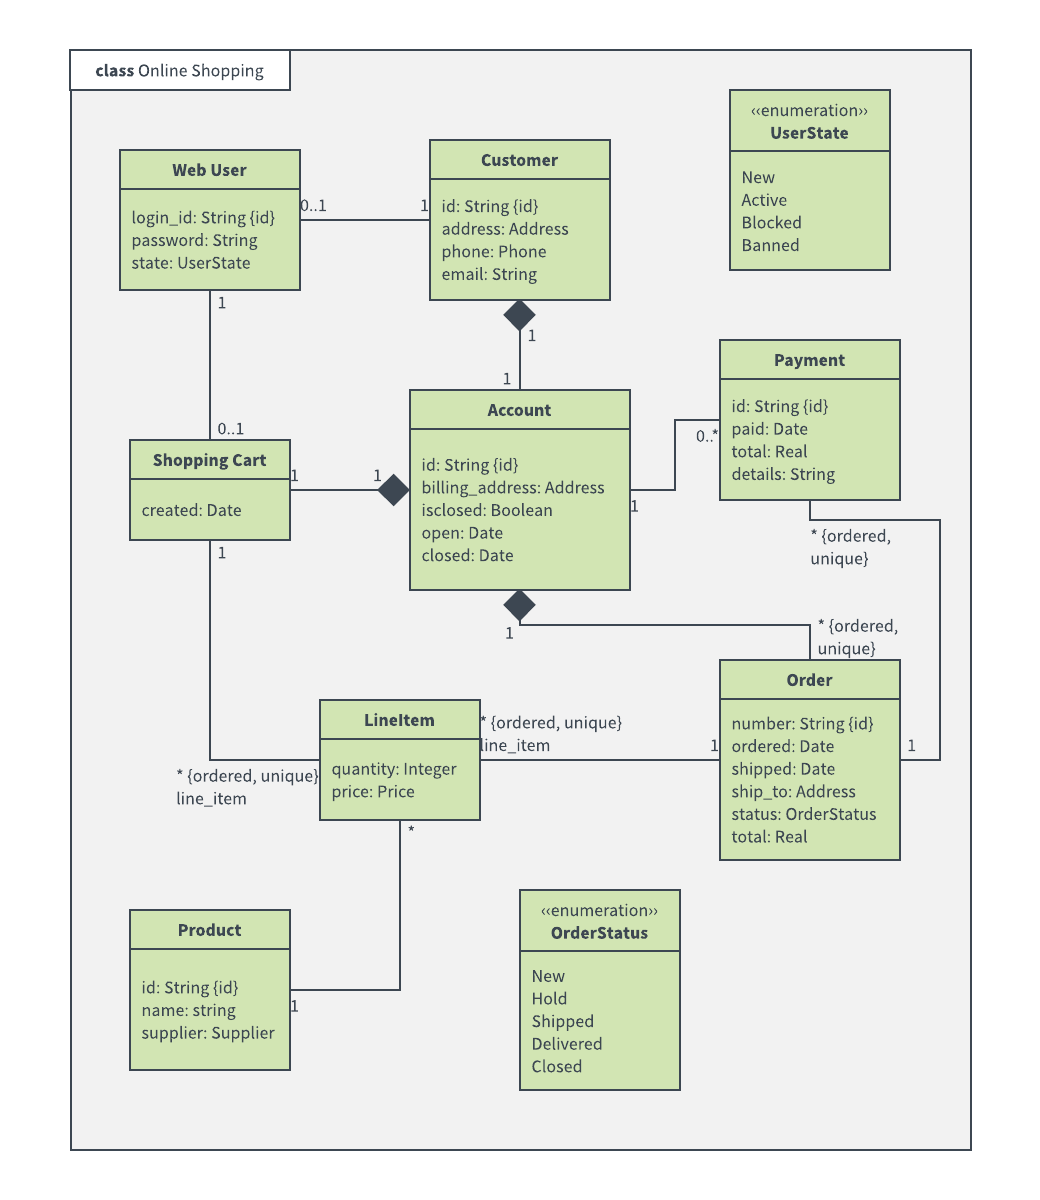 online shopping class diagram example [ 1040 x 1200 Pixel ]